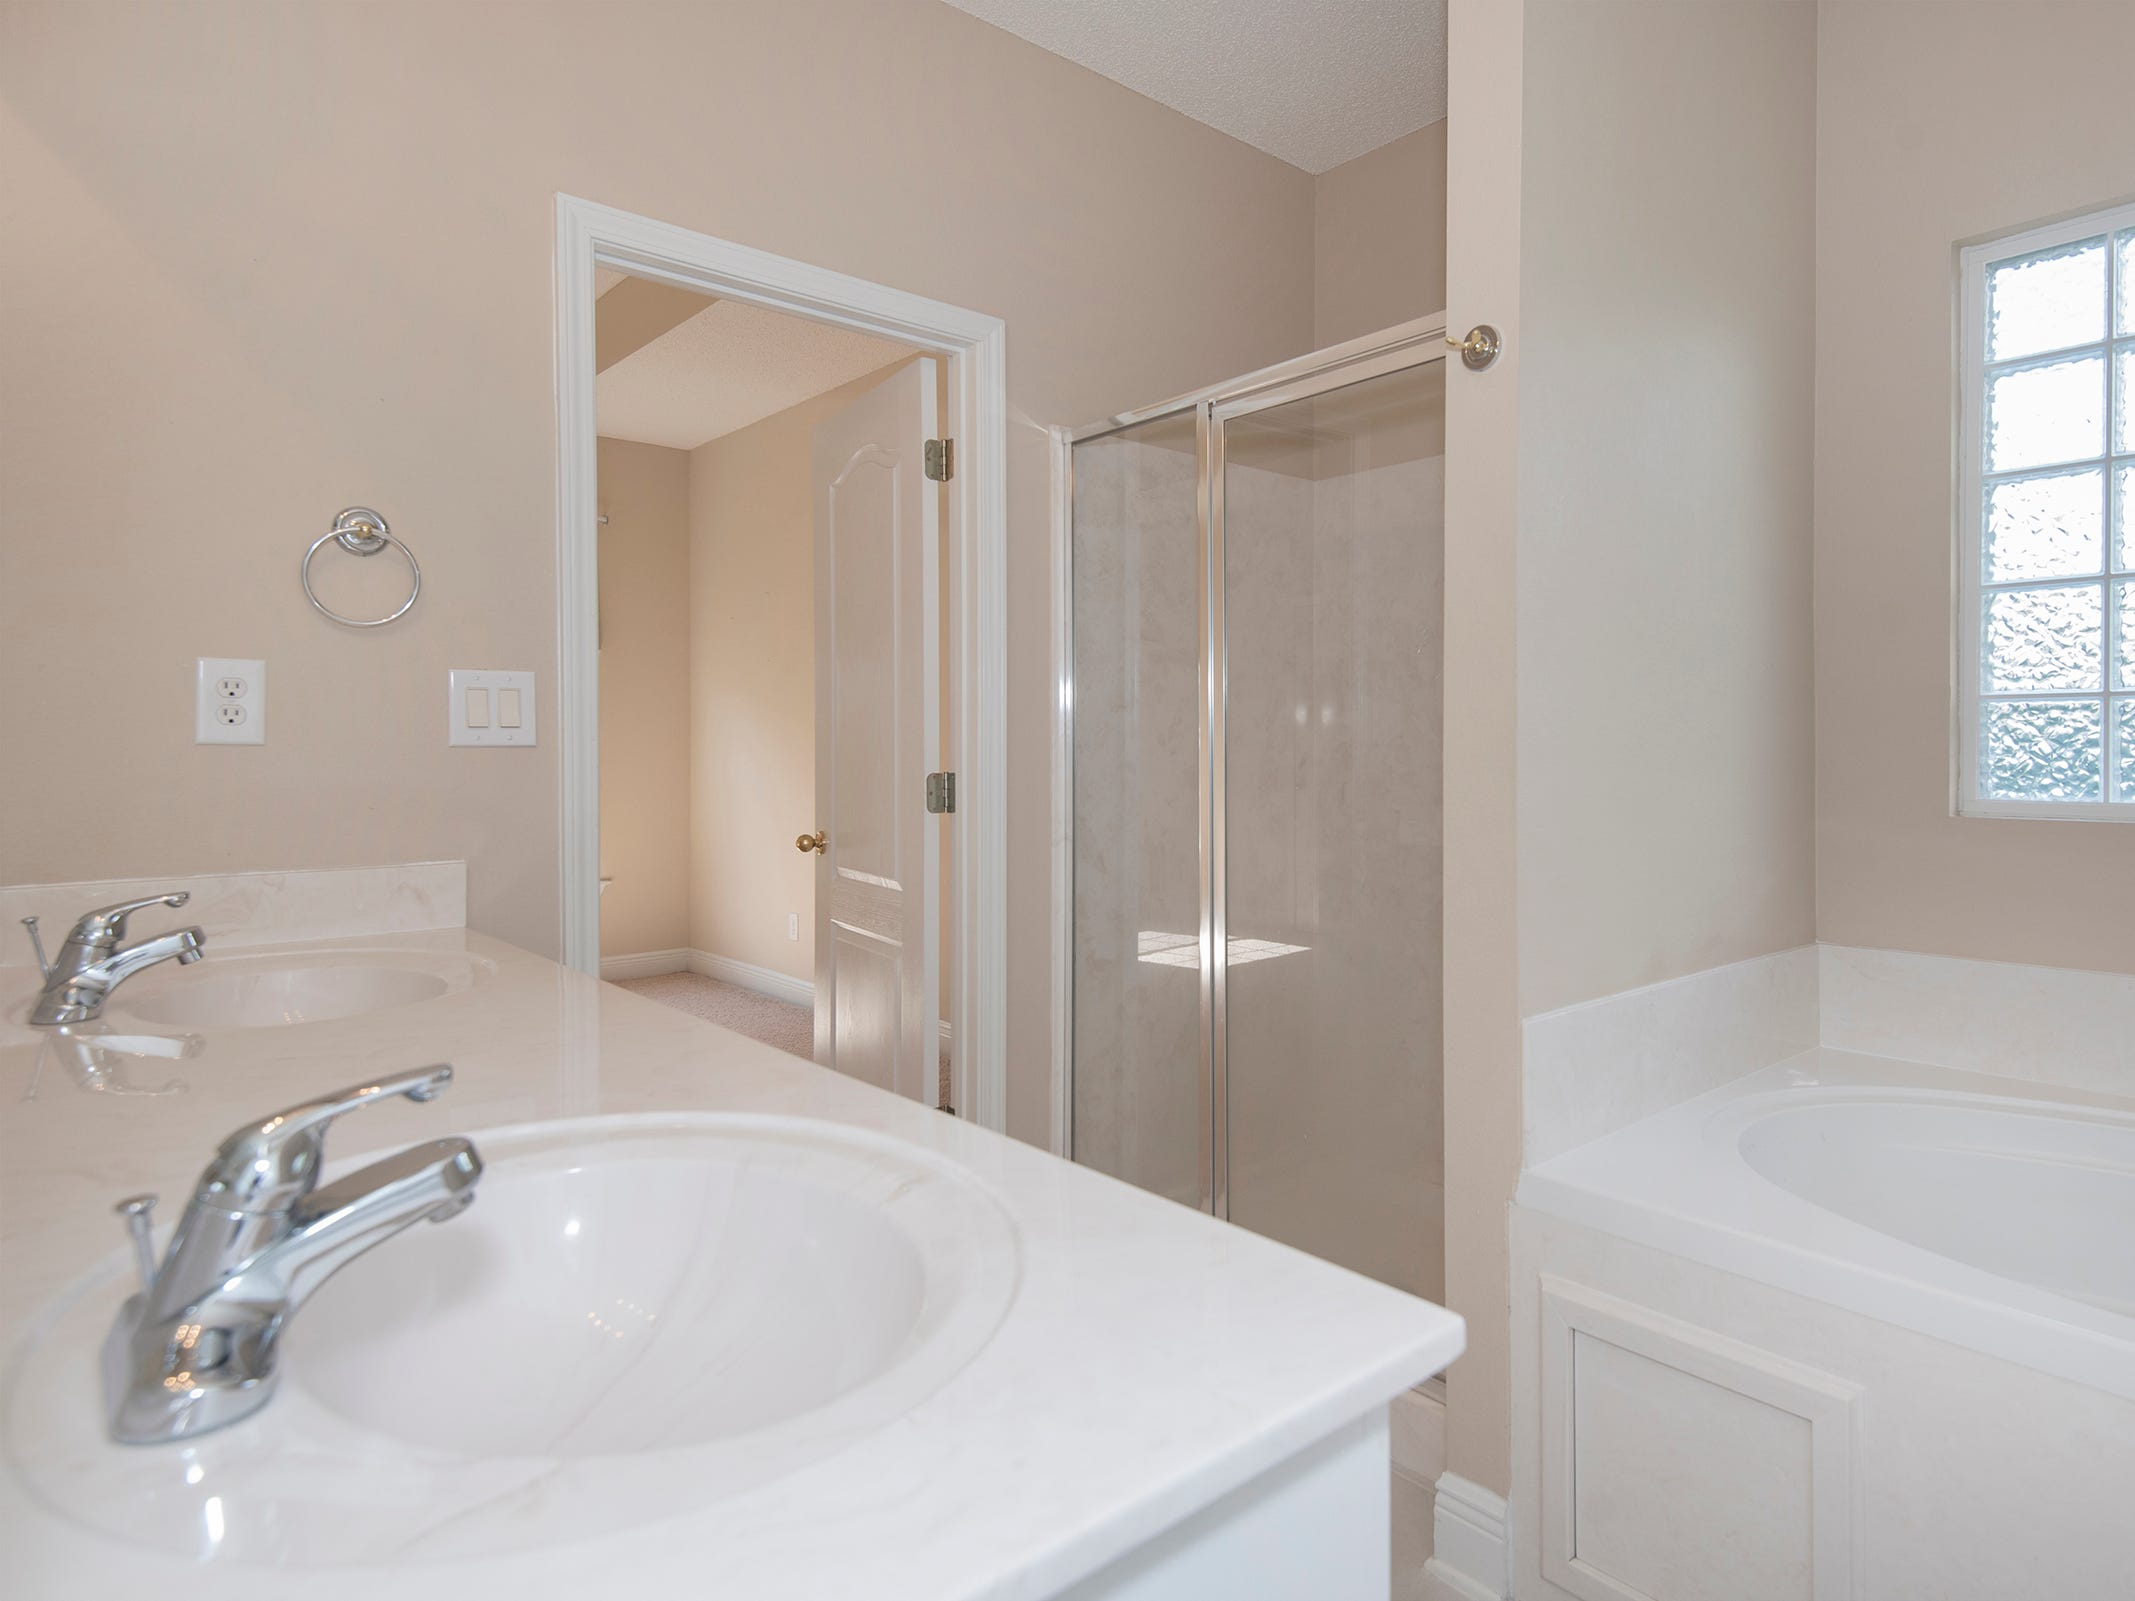 2363 Queens Ferry LaneThe master bath with a jetted tub and walk-in shower.